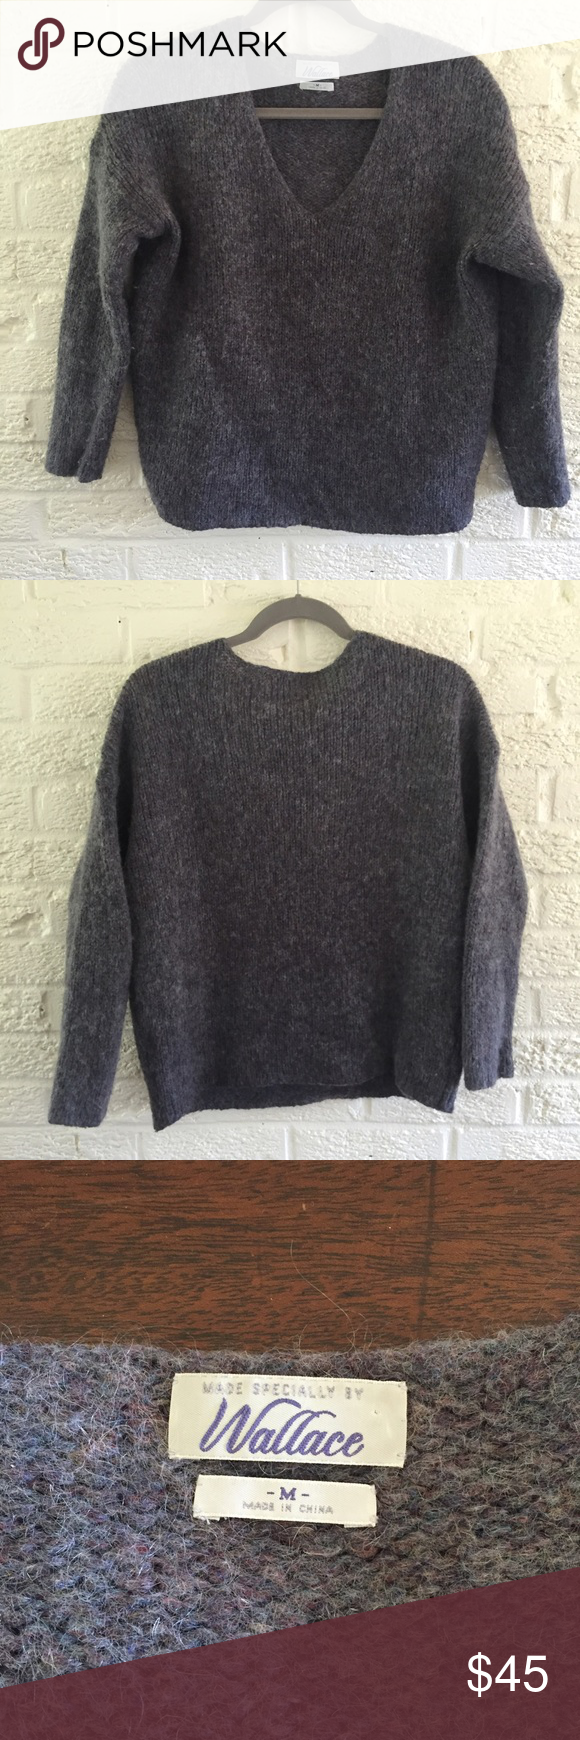 Madewell mohair wool sweater •Mohair wool blue and grey blend •Crew neck pullover style sweater •Super warm and lightweight  •In perfect condition  •Size medium but would also work well for a small for a slightly looser look Madewell Sweaters Crew & Scoop Necks